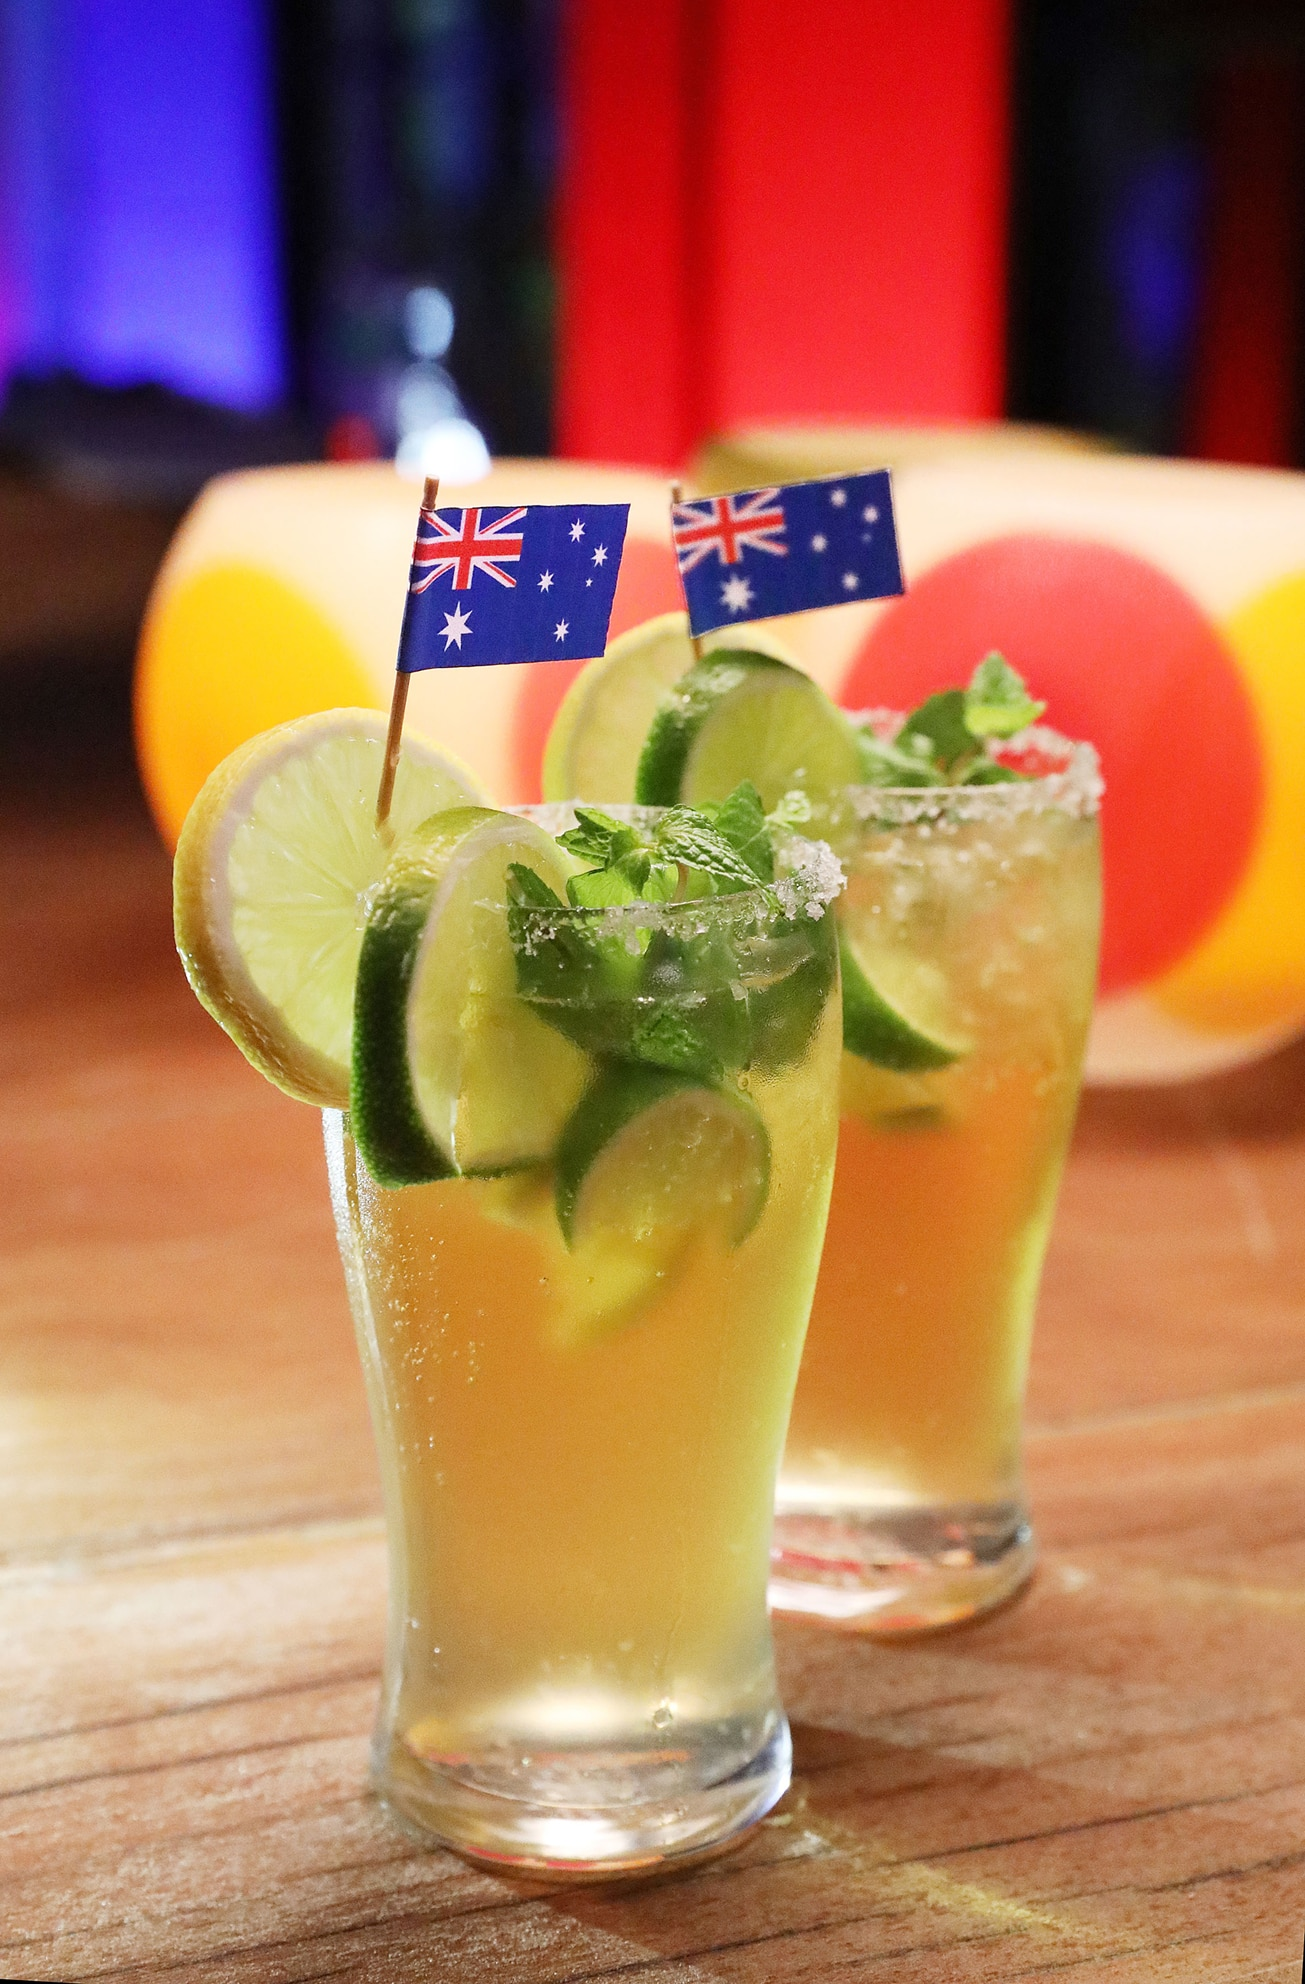 Green n gold beer punch recipe eurovision party recipes sbs food green n gold beer punch httpssbsfoodrecipes green n gold beer punch forumfinder Choice Image